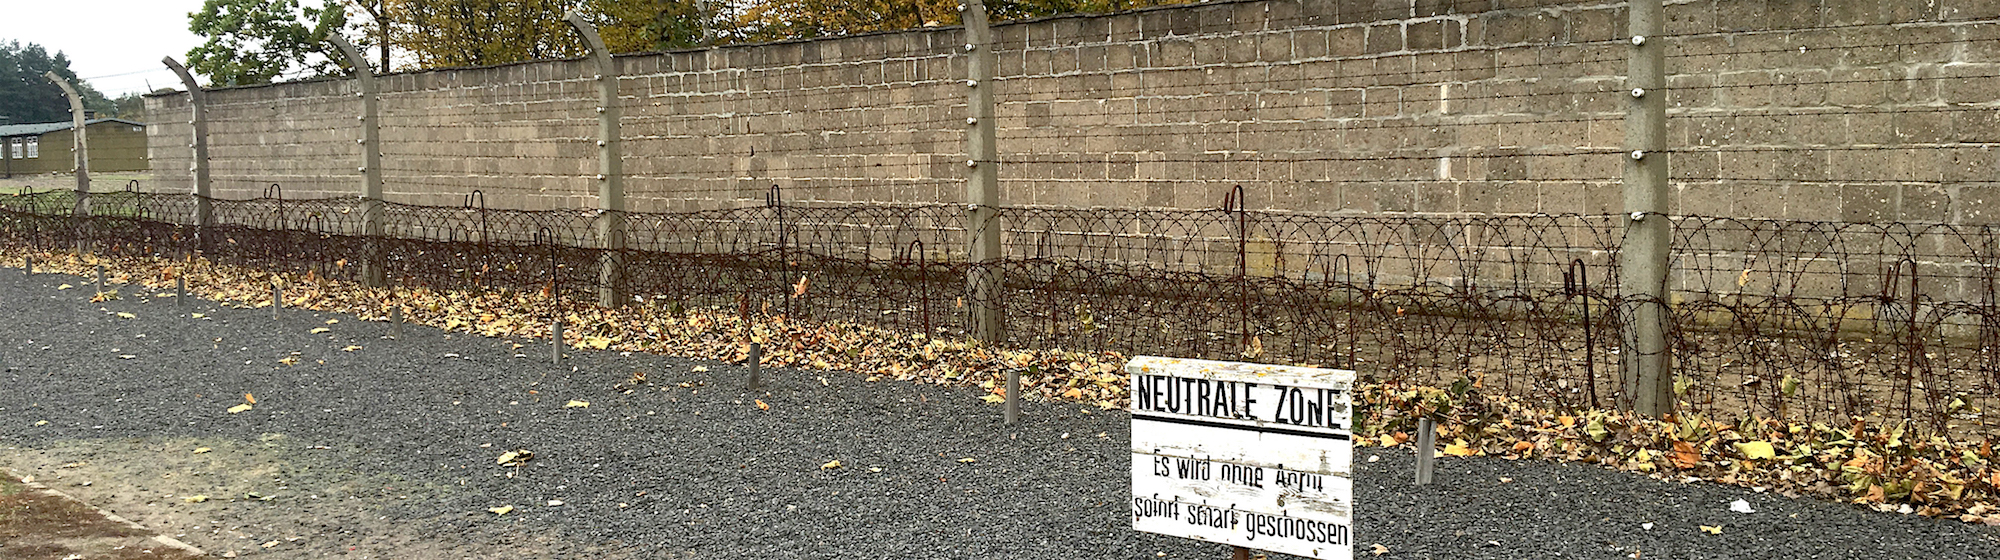 Sachsenhausen concentration camp: reconstructed fence